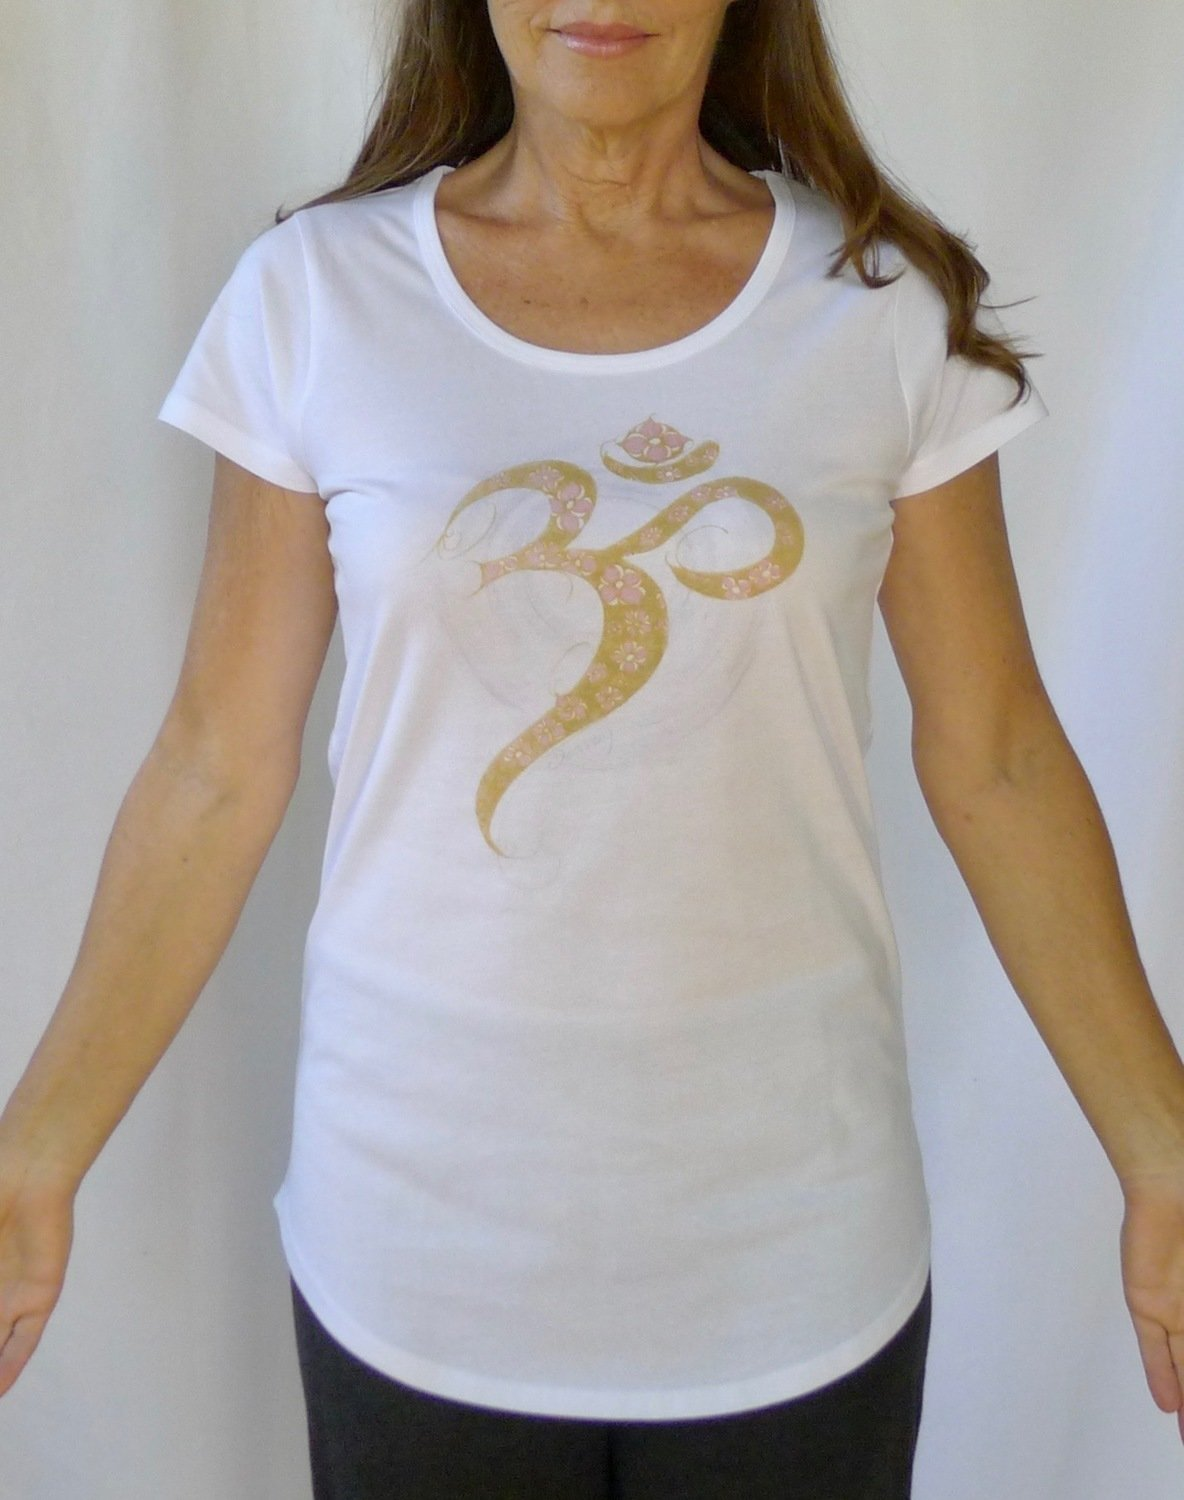 Golden Aum Yoga Tee